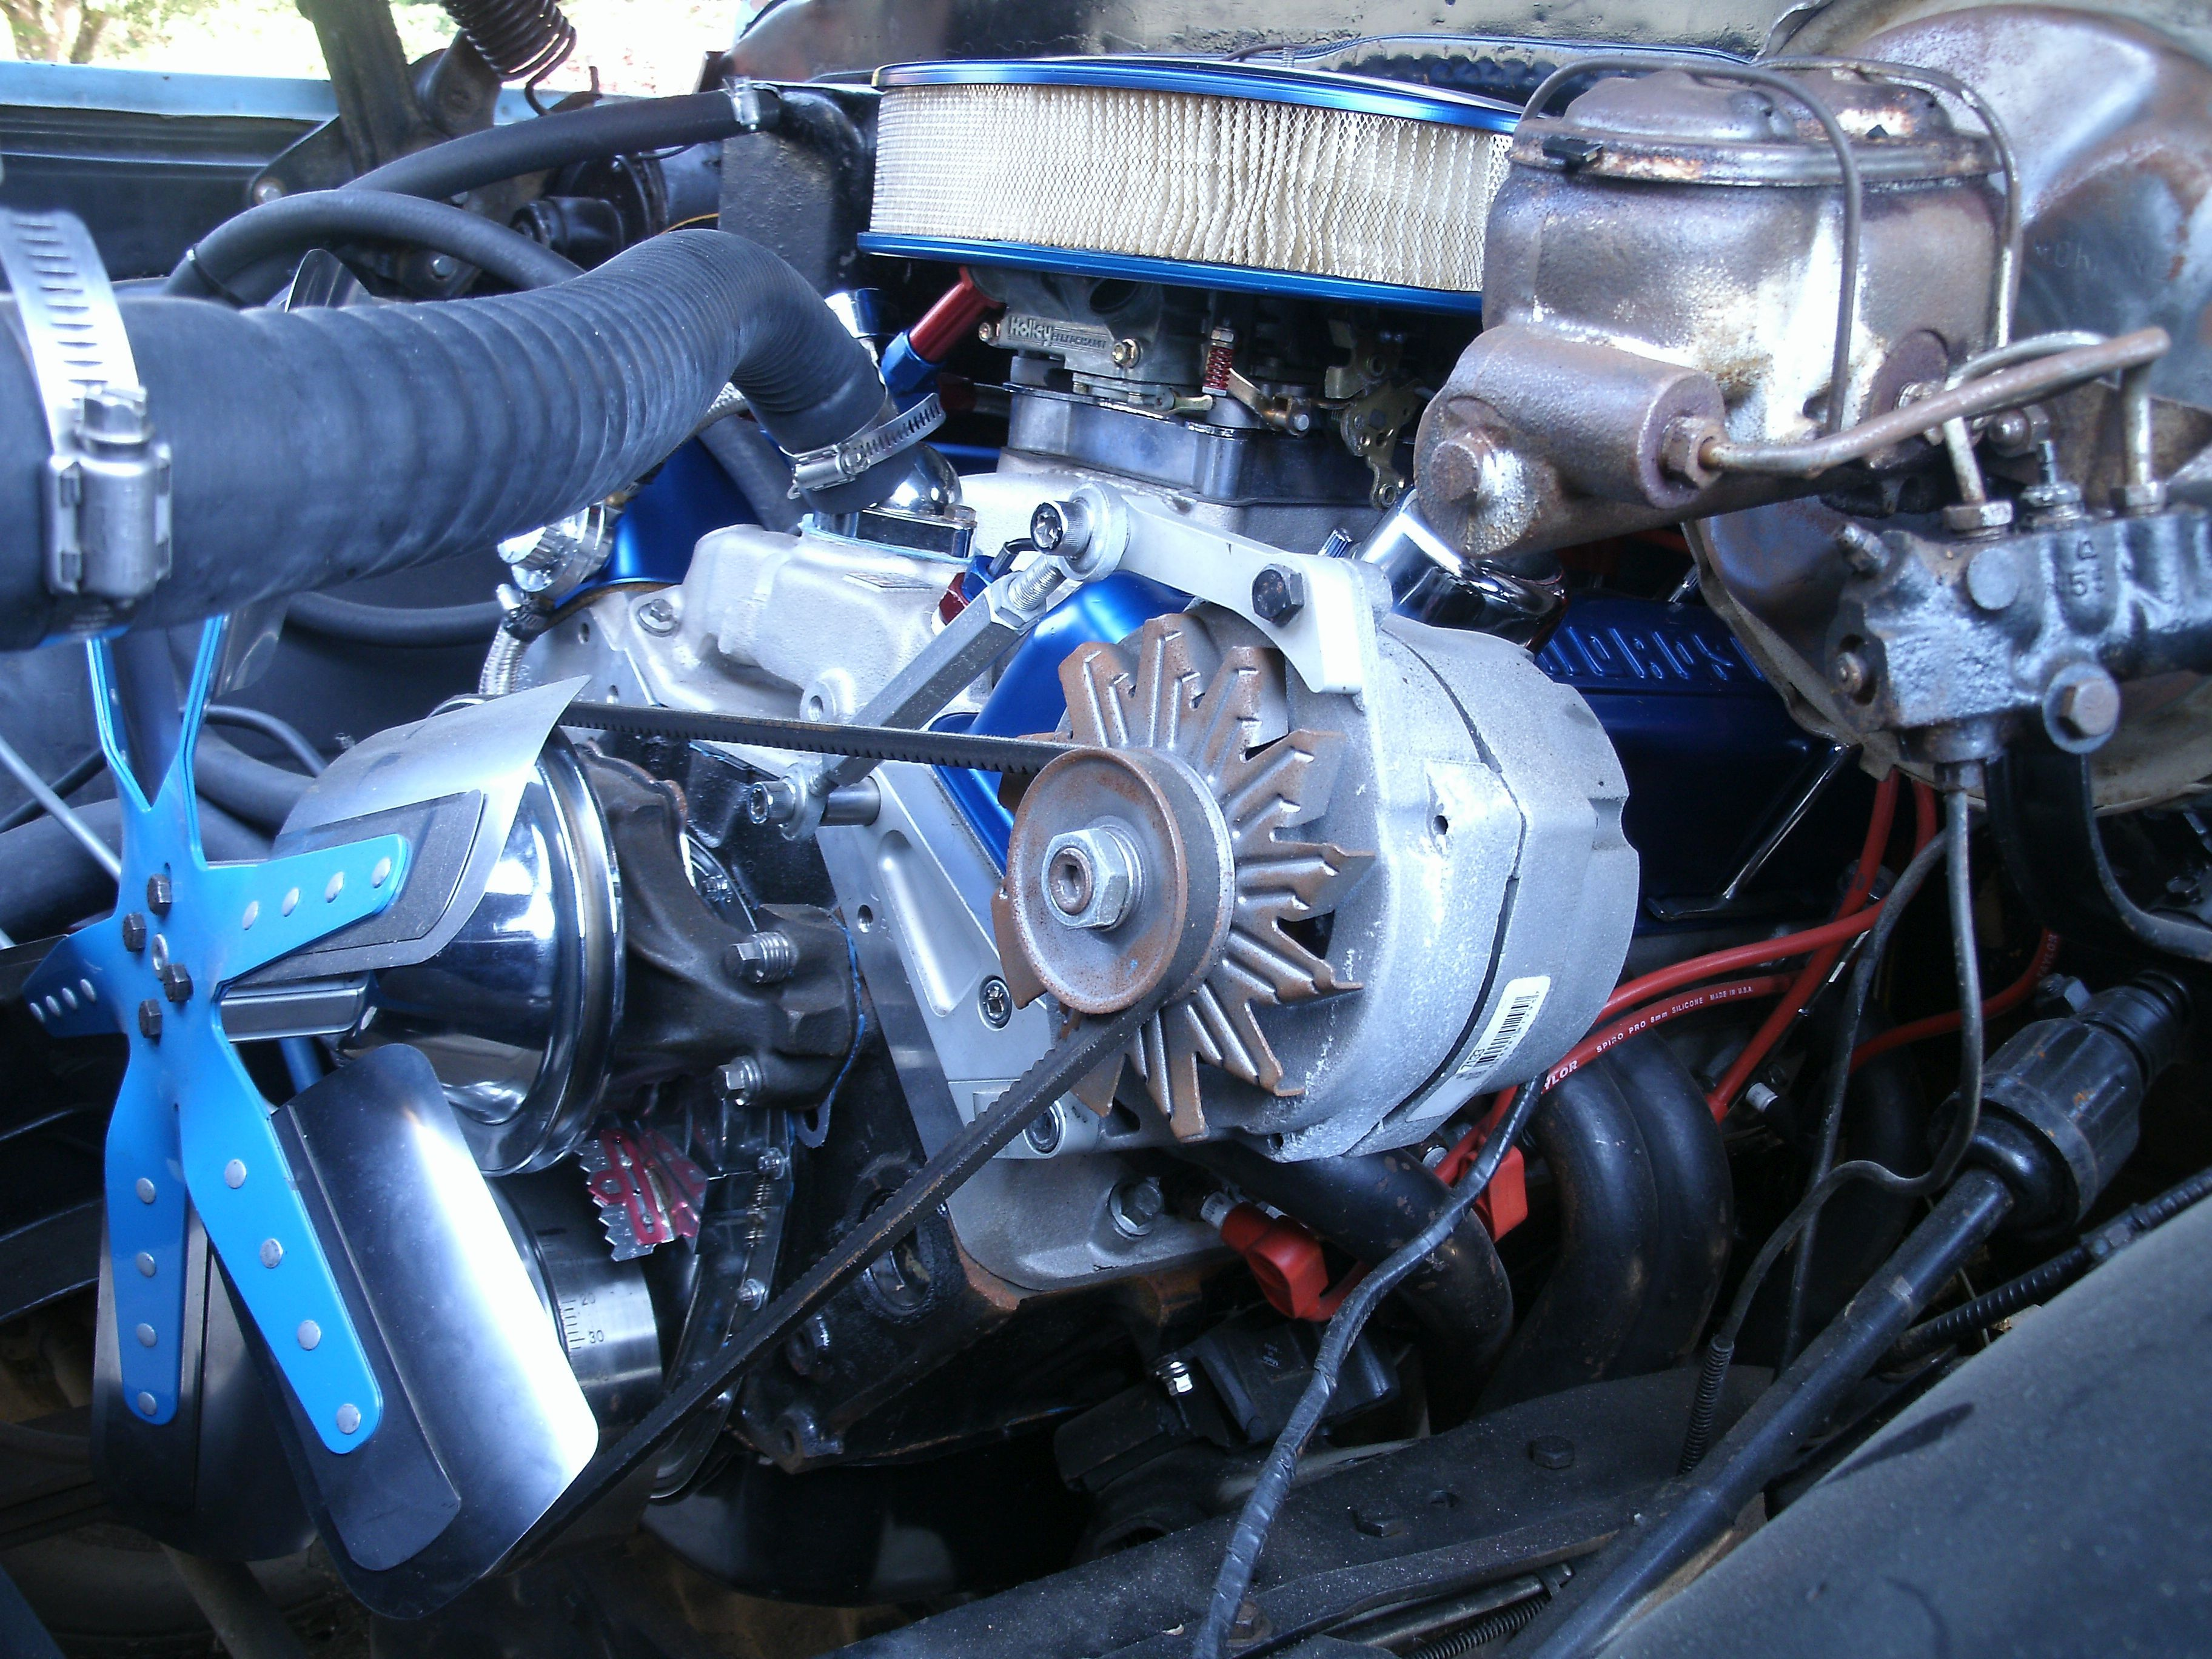 383ci stroker crate engine small block gm style shortblock blueprintengines shortblock flattoppistons castcrank bp3830 chevy pickup chevy350 4boltmain malvernweather Image collections